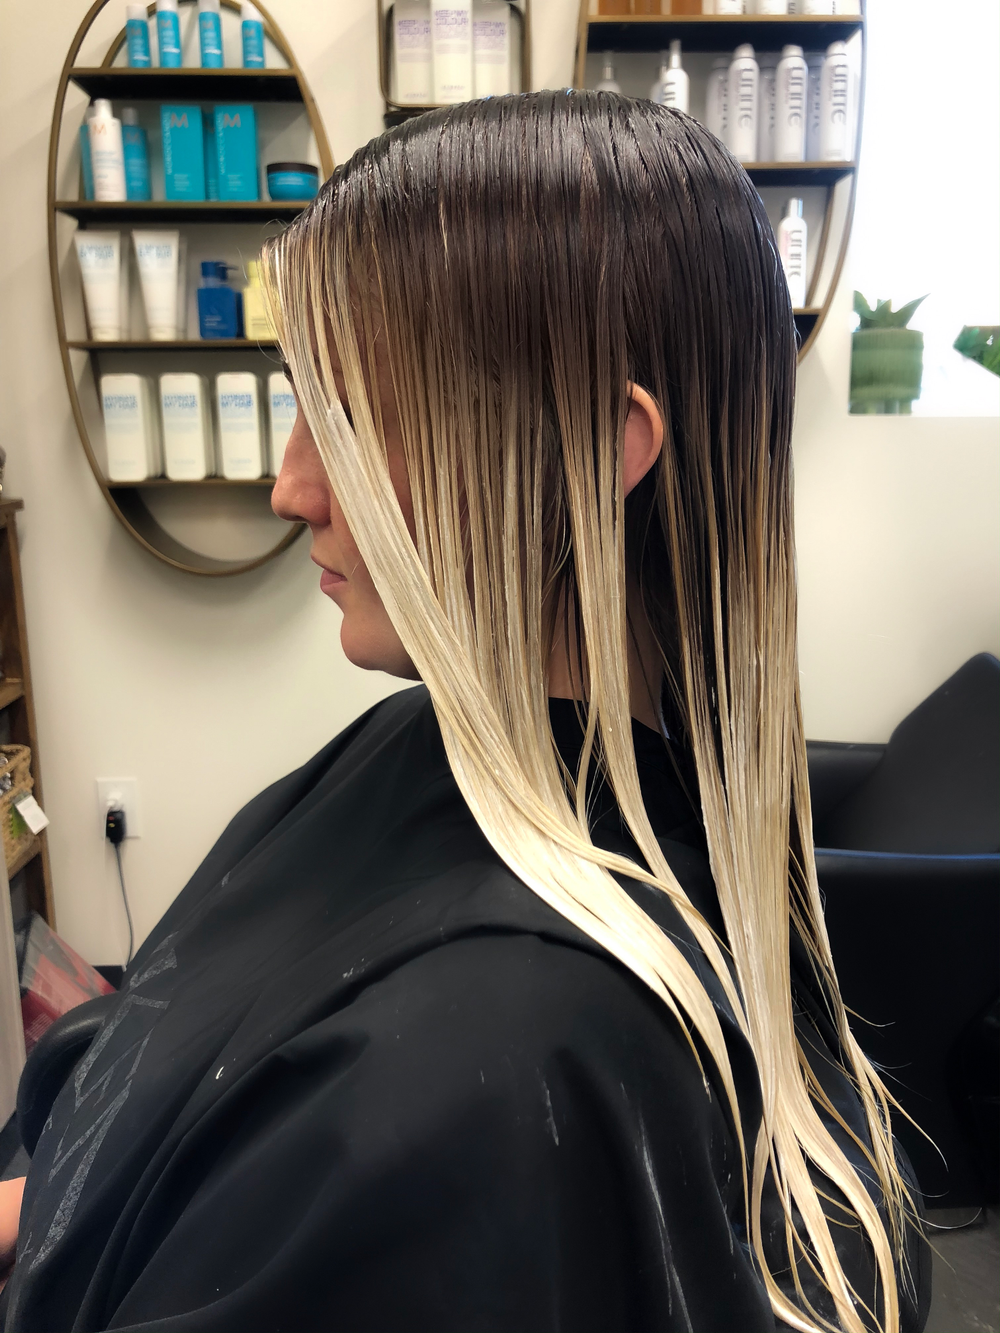 """Wet Balayage is a perfect in-between for clients who typically get a full or partial blonding session,"" says Vanderwouden, who is based out of Murrieta, California, and regularly educates on lightening services like foilyage and balayage. ""Your ideal canvas is someone who is already previously lightened on their ends or a client you have just done a lightening service on, prior to toning or glazing the ends."""